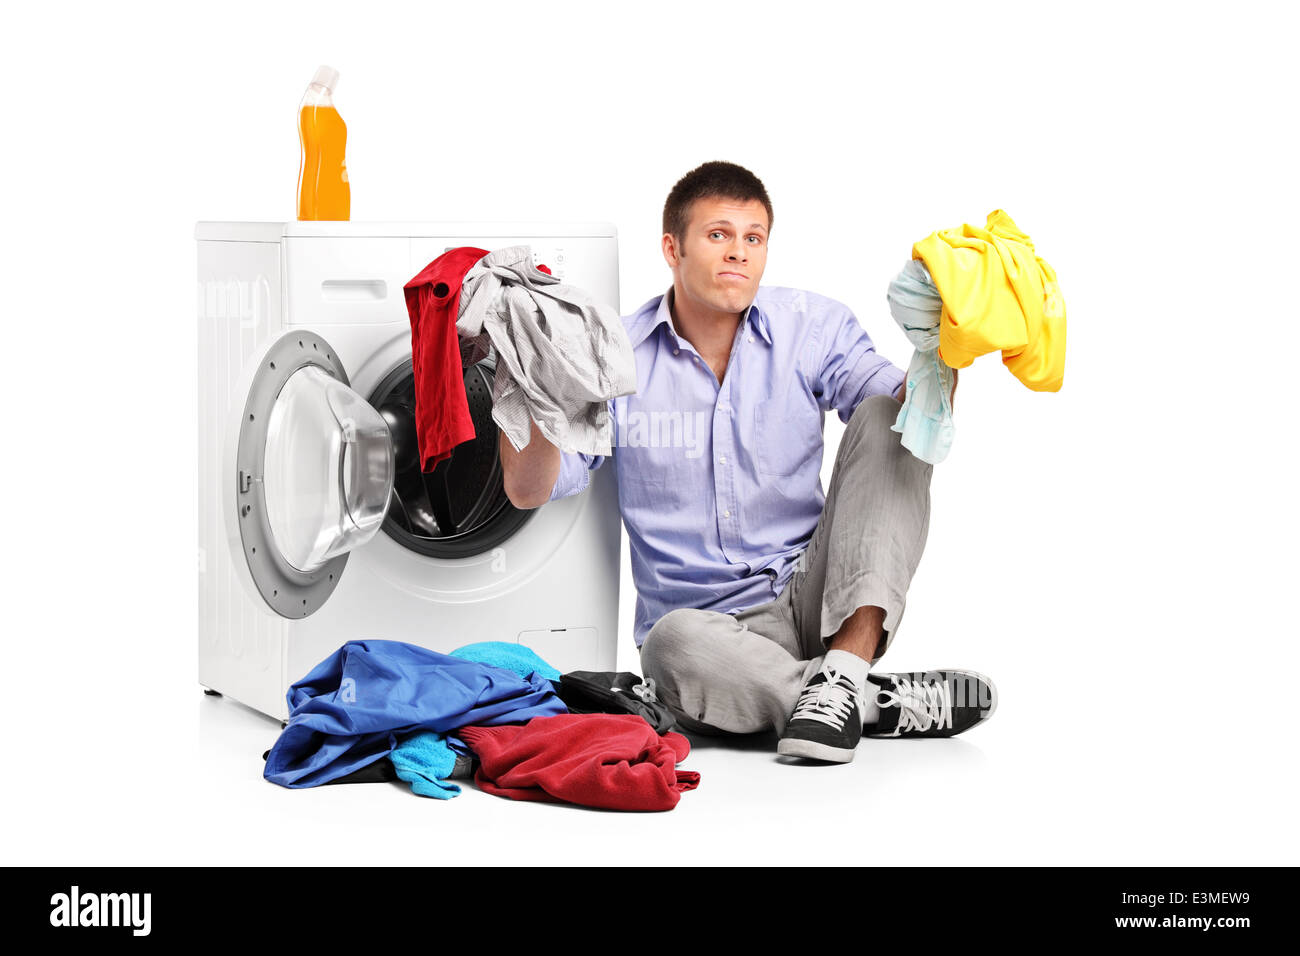 Confused young man doing laundry seated by a washing machine - Stock Image